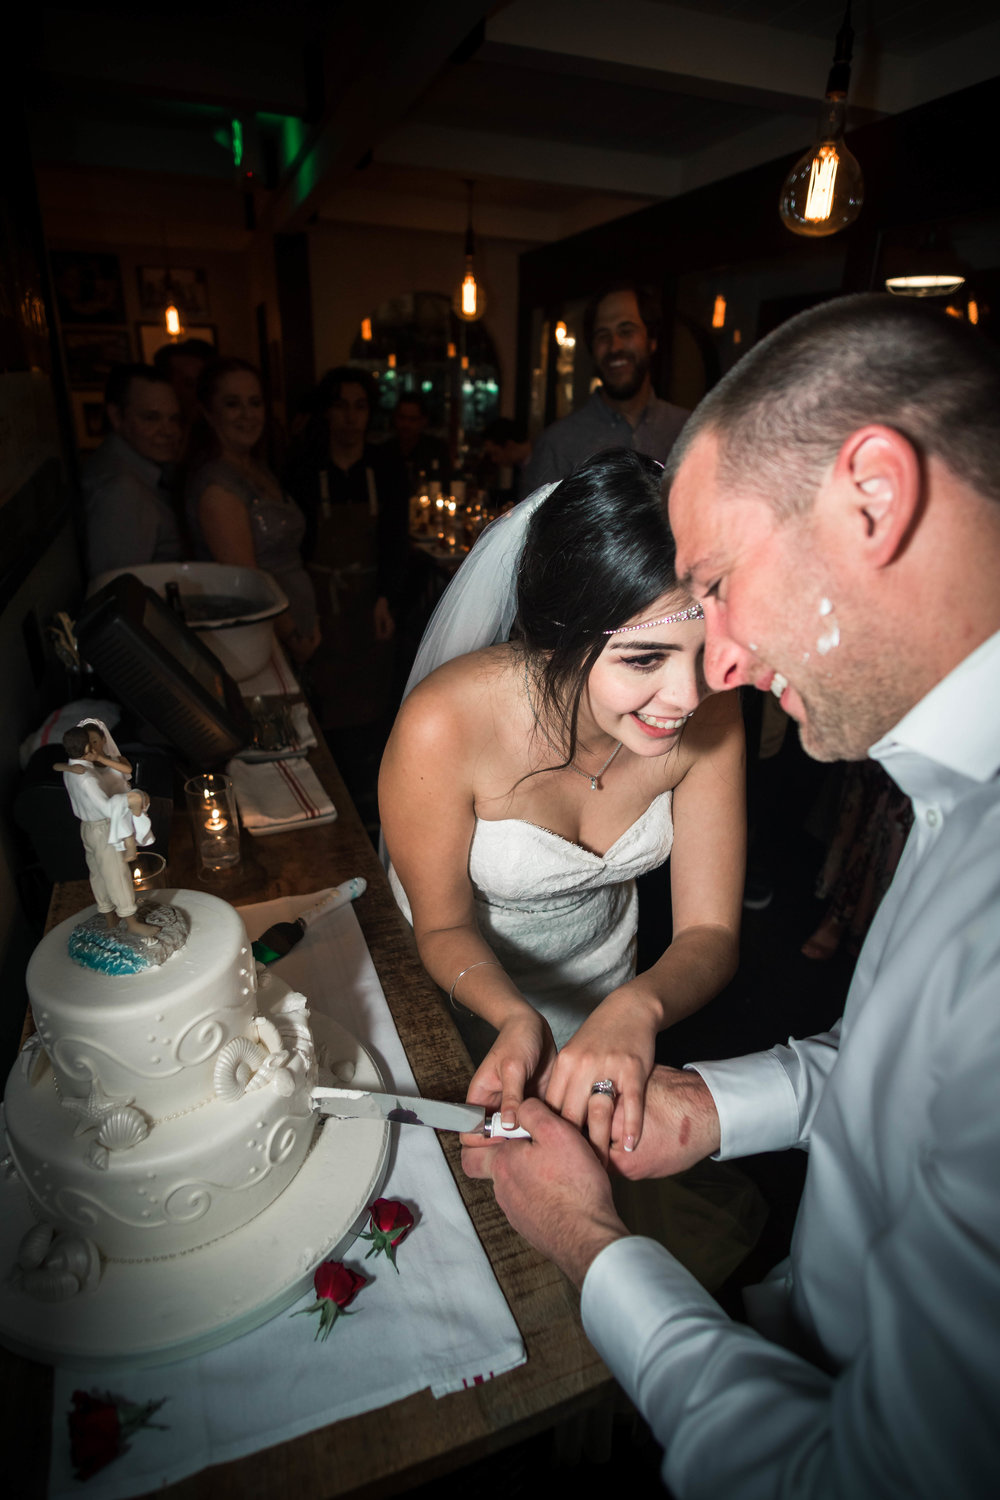 Bride and groom cutting The wedding cake And laughing